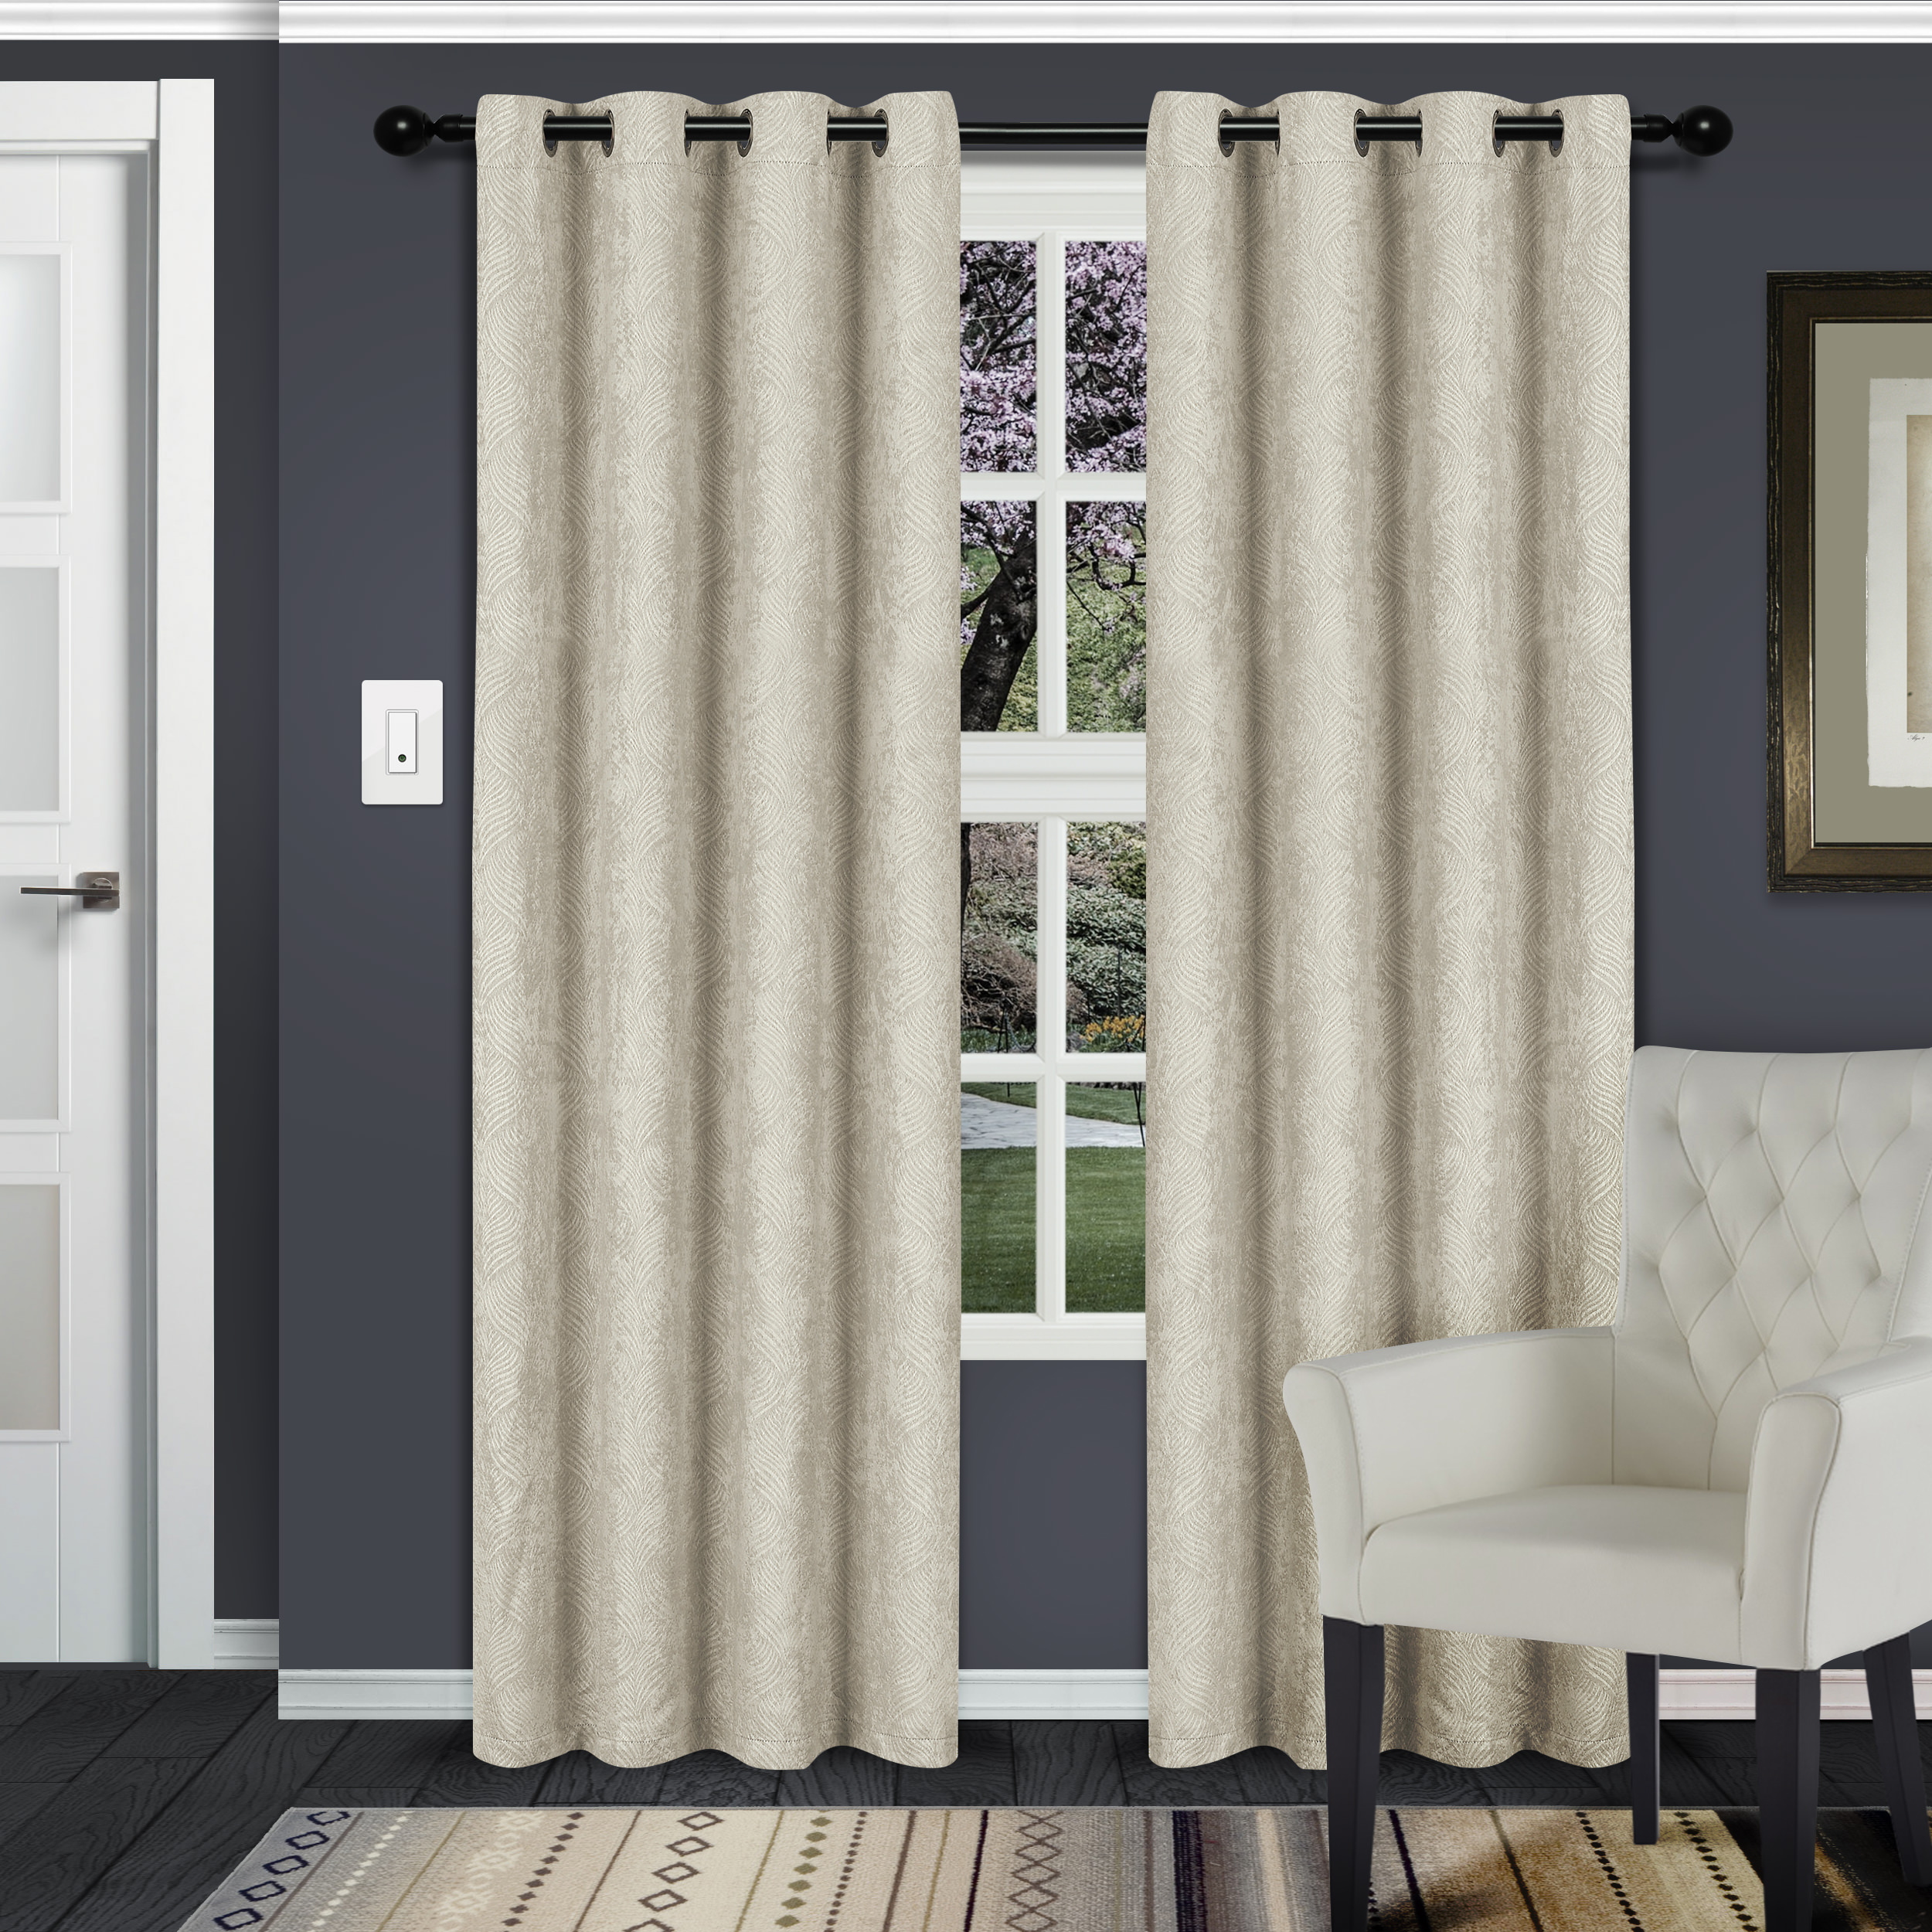 curtains reduce temperature worbo strip resistant to energy barrier curtain heat high thermal costs